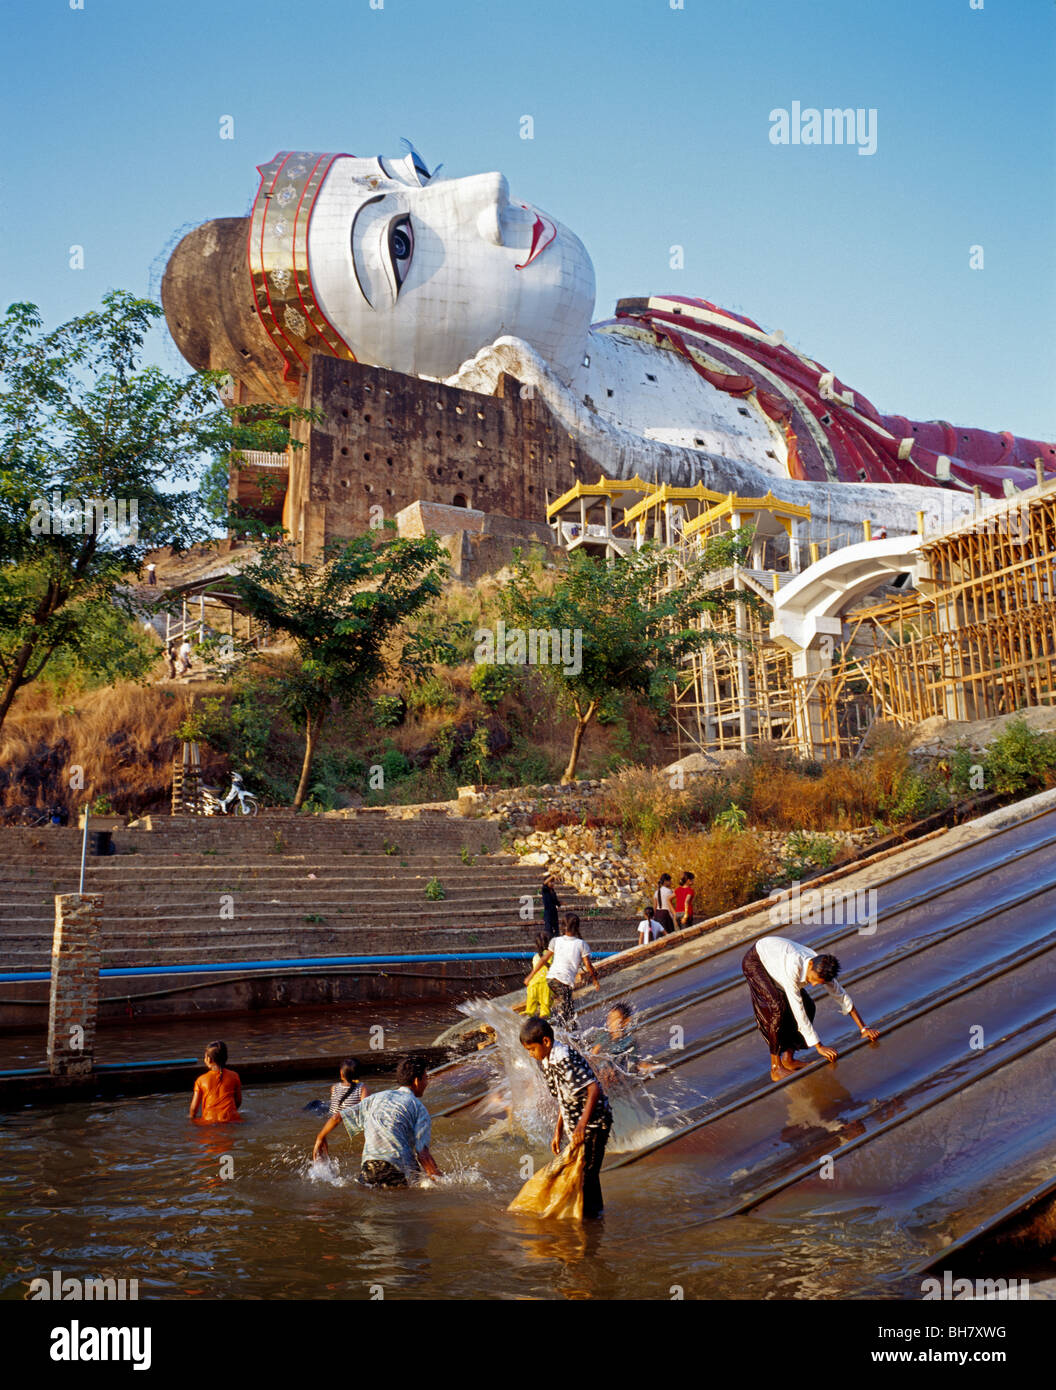 Children playing in the water of a playground slide at Giant Reclining Buddha at Win Sein Taw Ya Monastery Myanmar - Stock Image